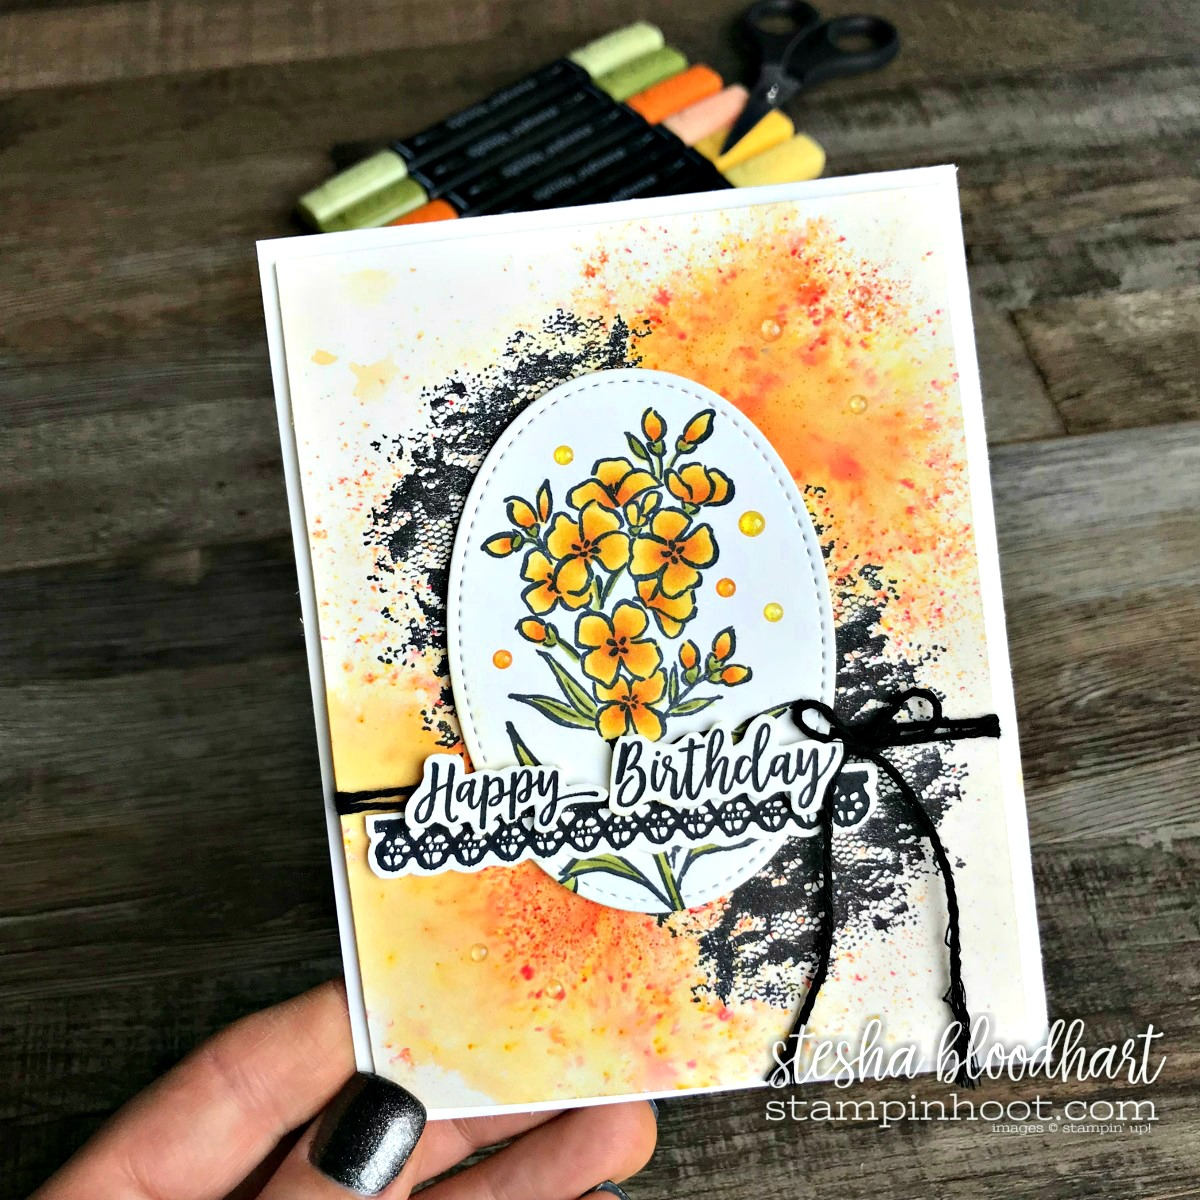 Southern Serenade Stamp Set by Stampin' Up! From the 2018 Occasions Catalog for GDP126 Sketch Challenge. Card designed and created by Stesha Bloodhart, Stampin' Hoot! #steshabloodhart #stampinhoot